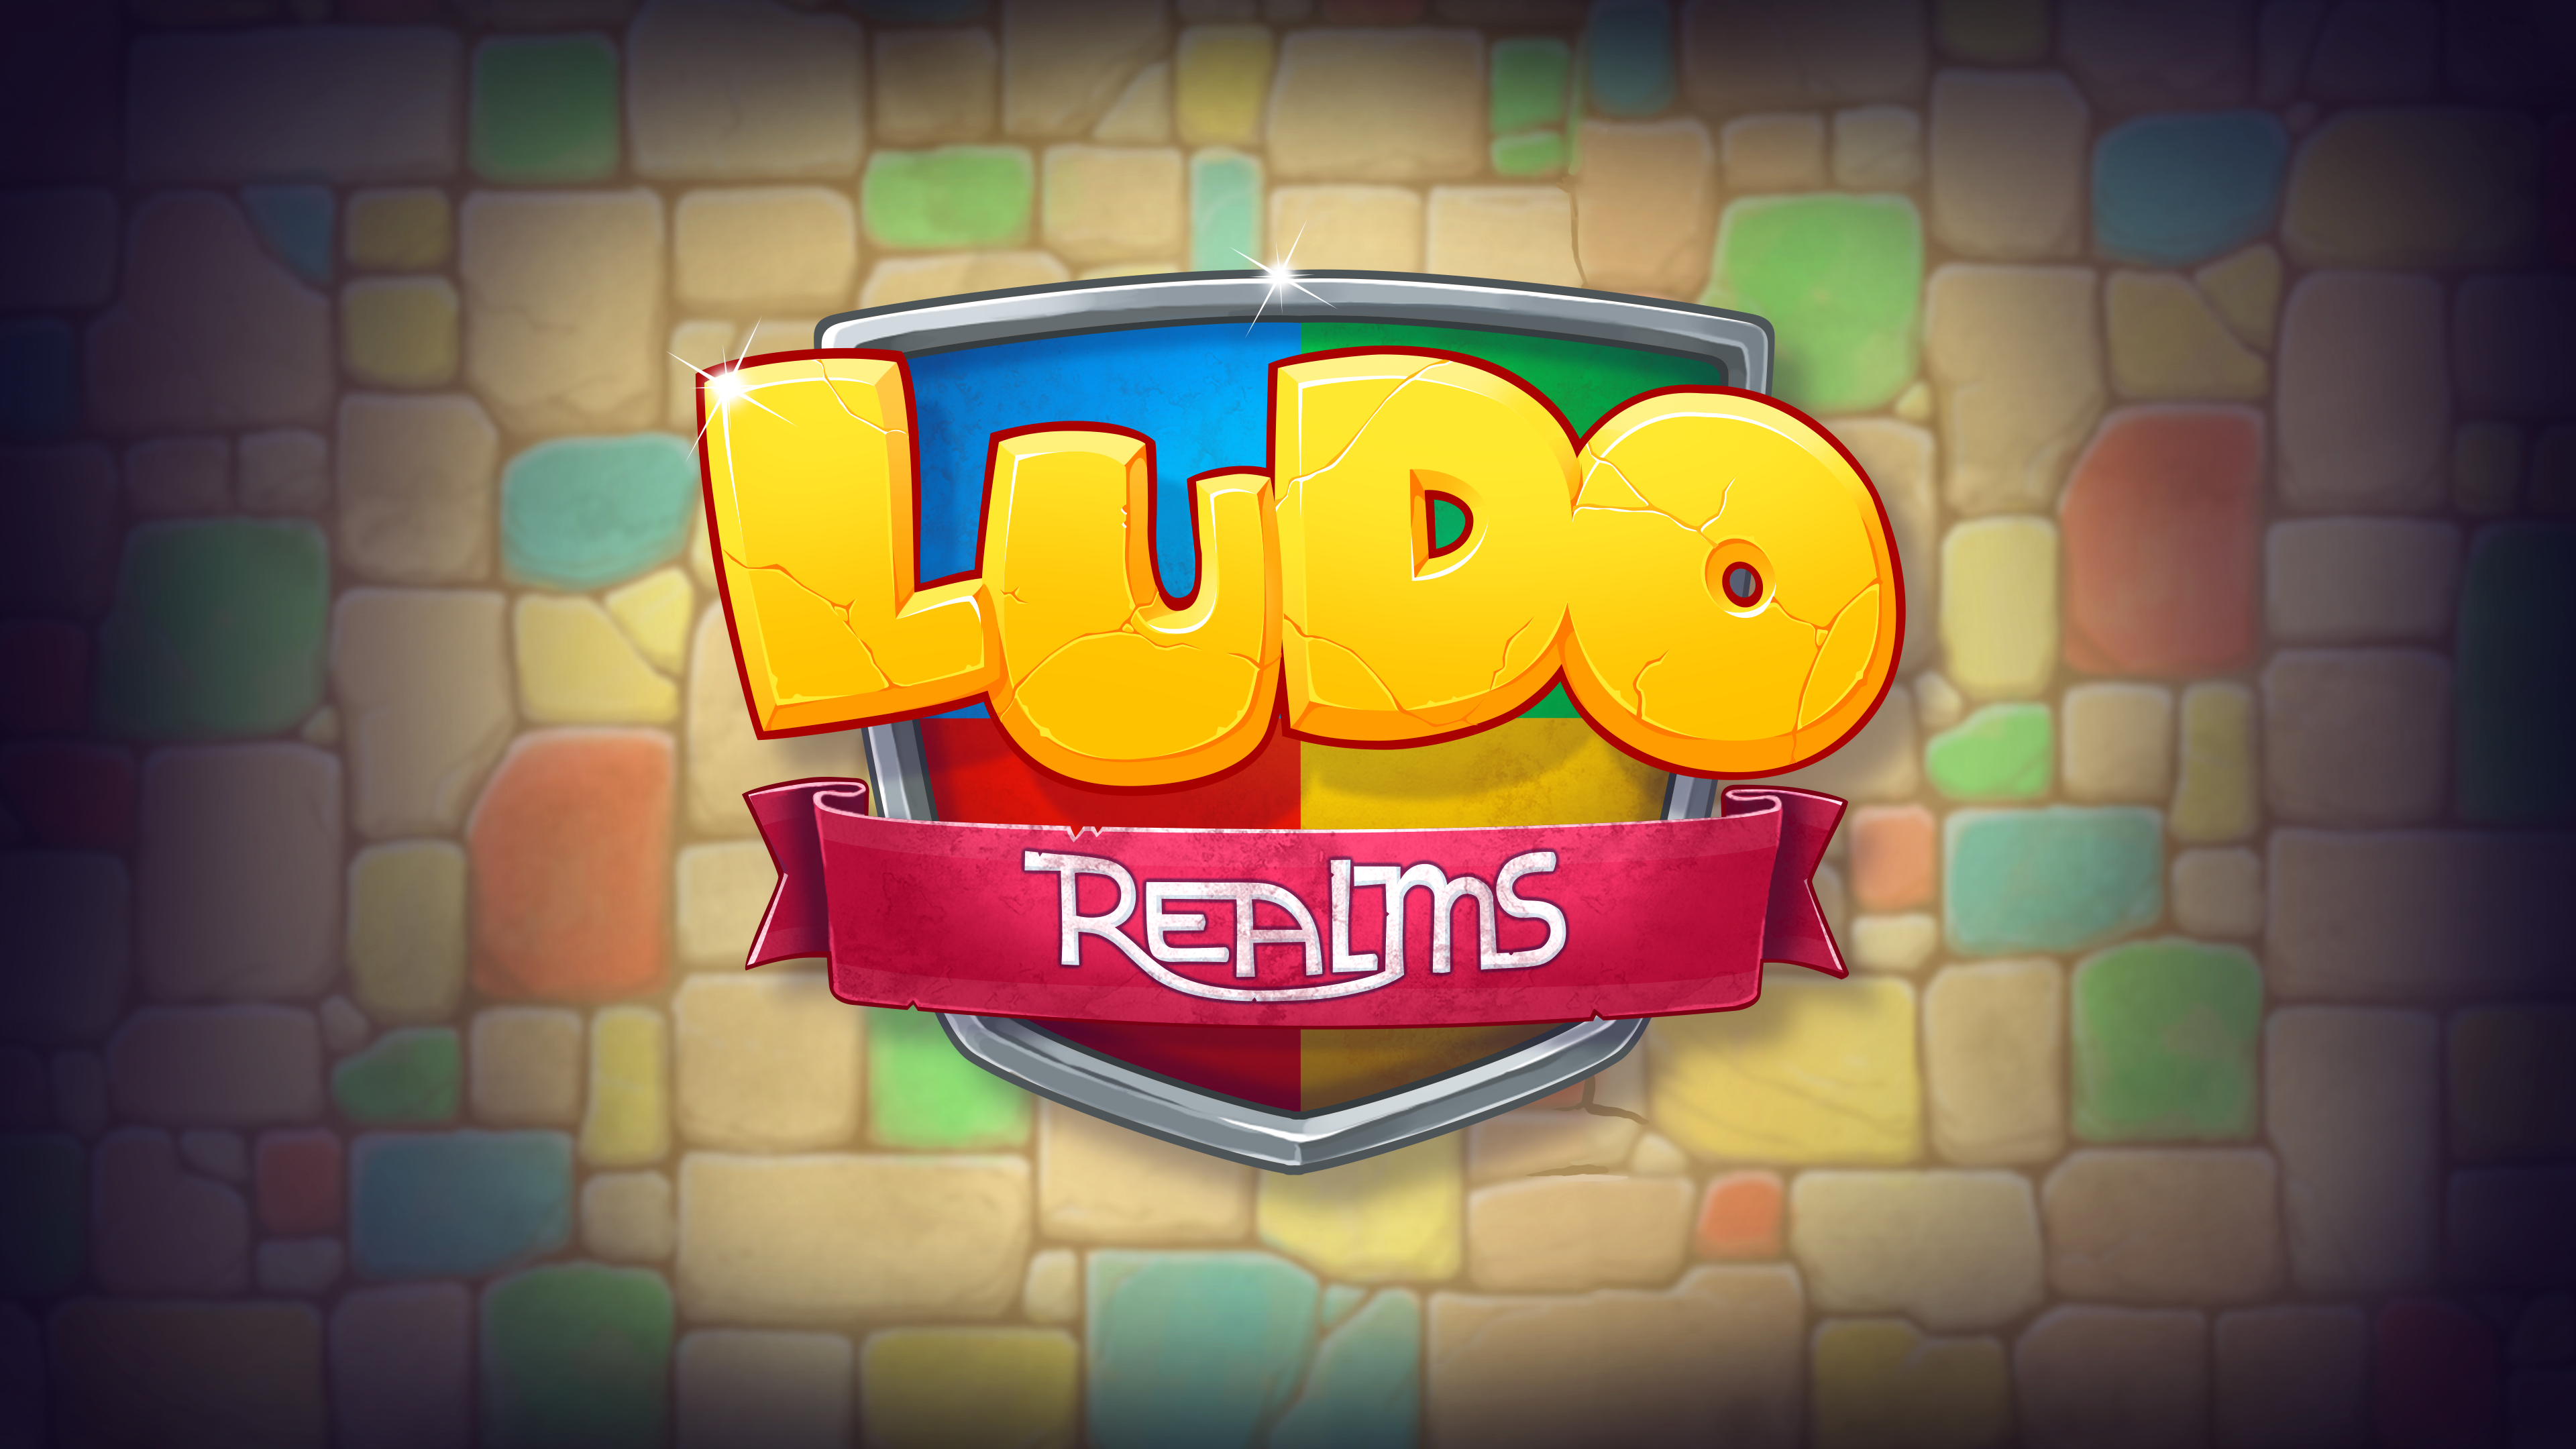 Ludo Realms (Playspace)_GamesfromSpain